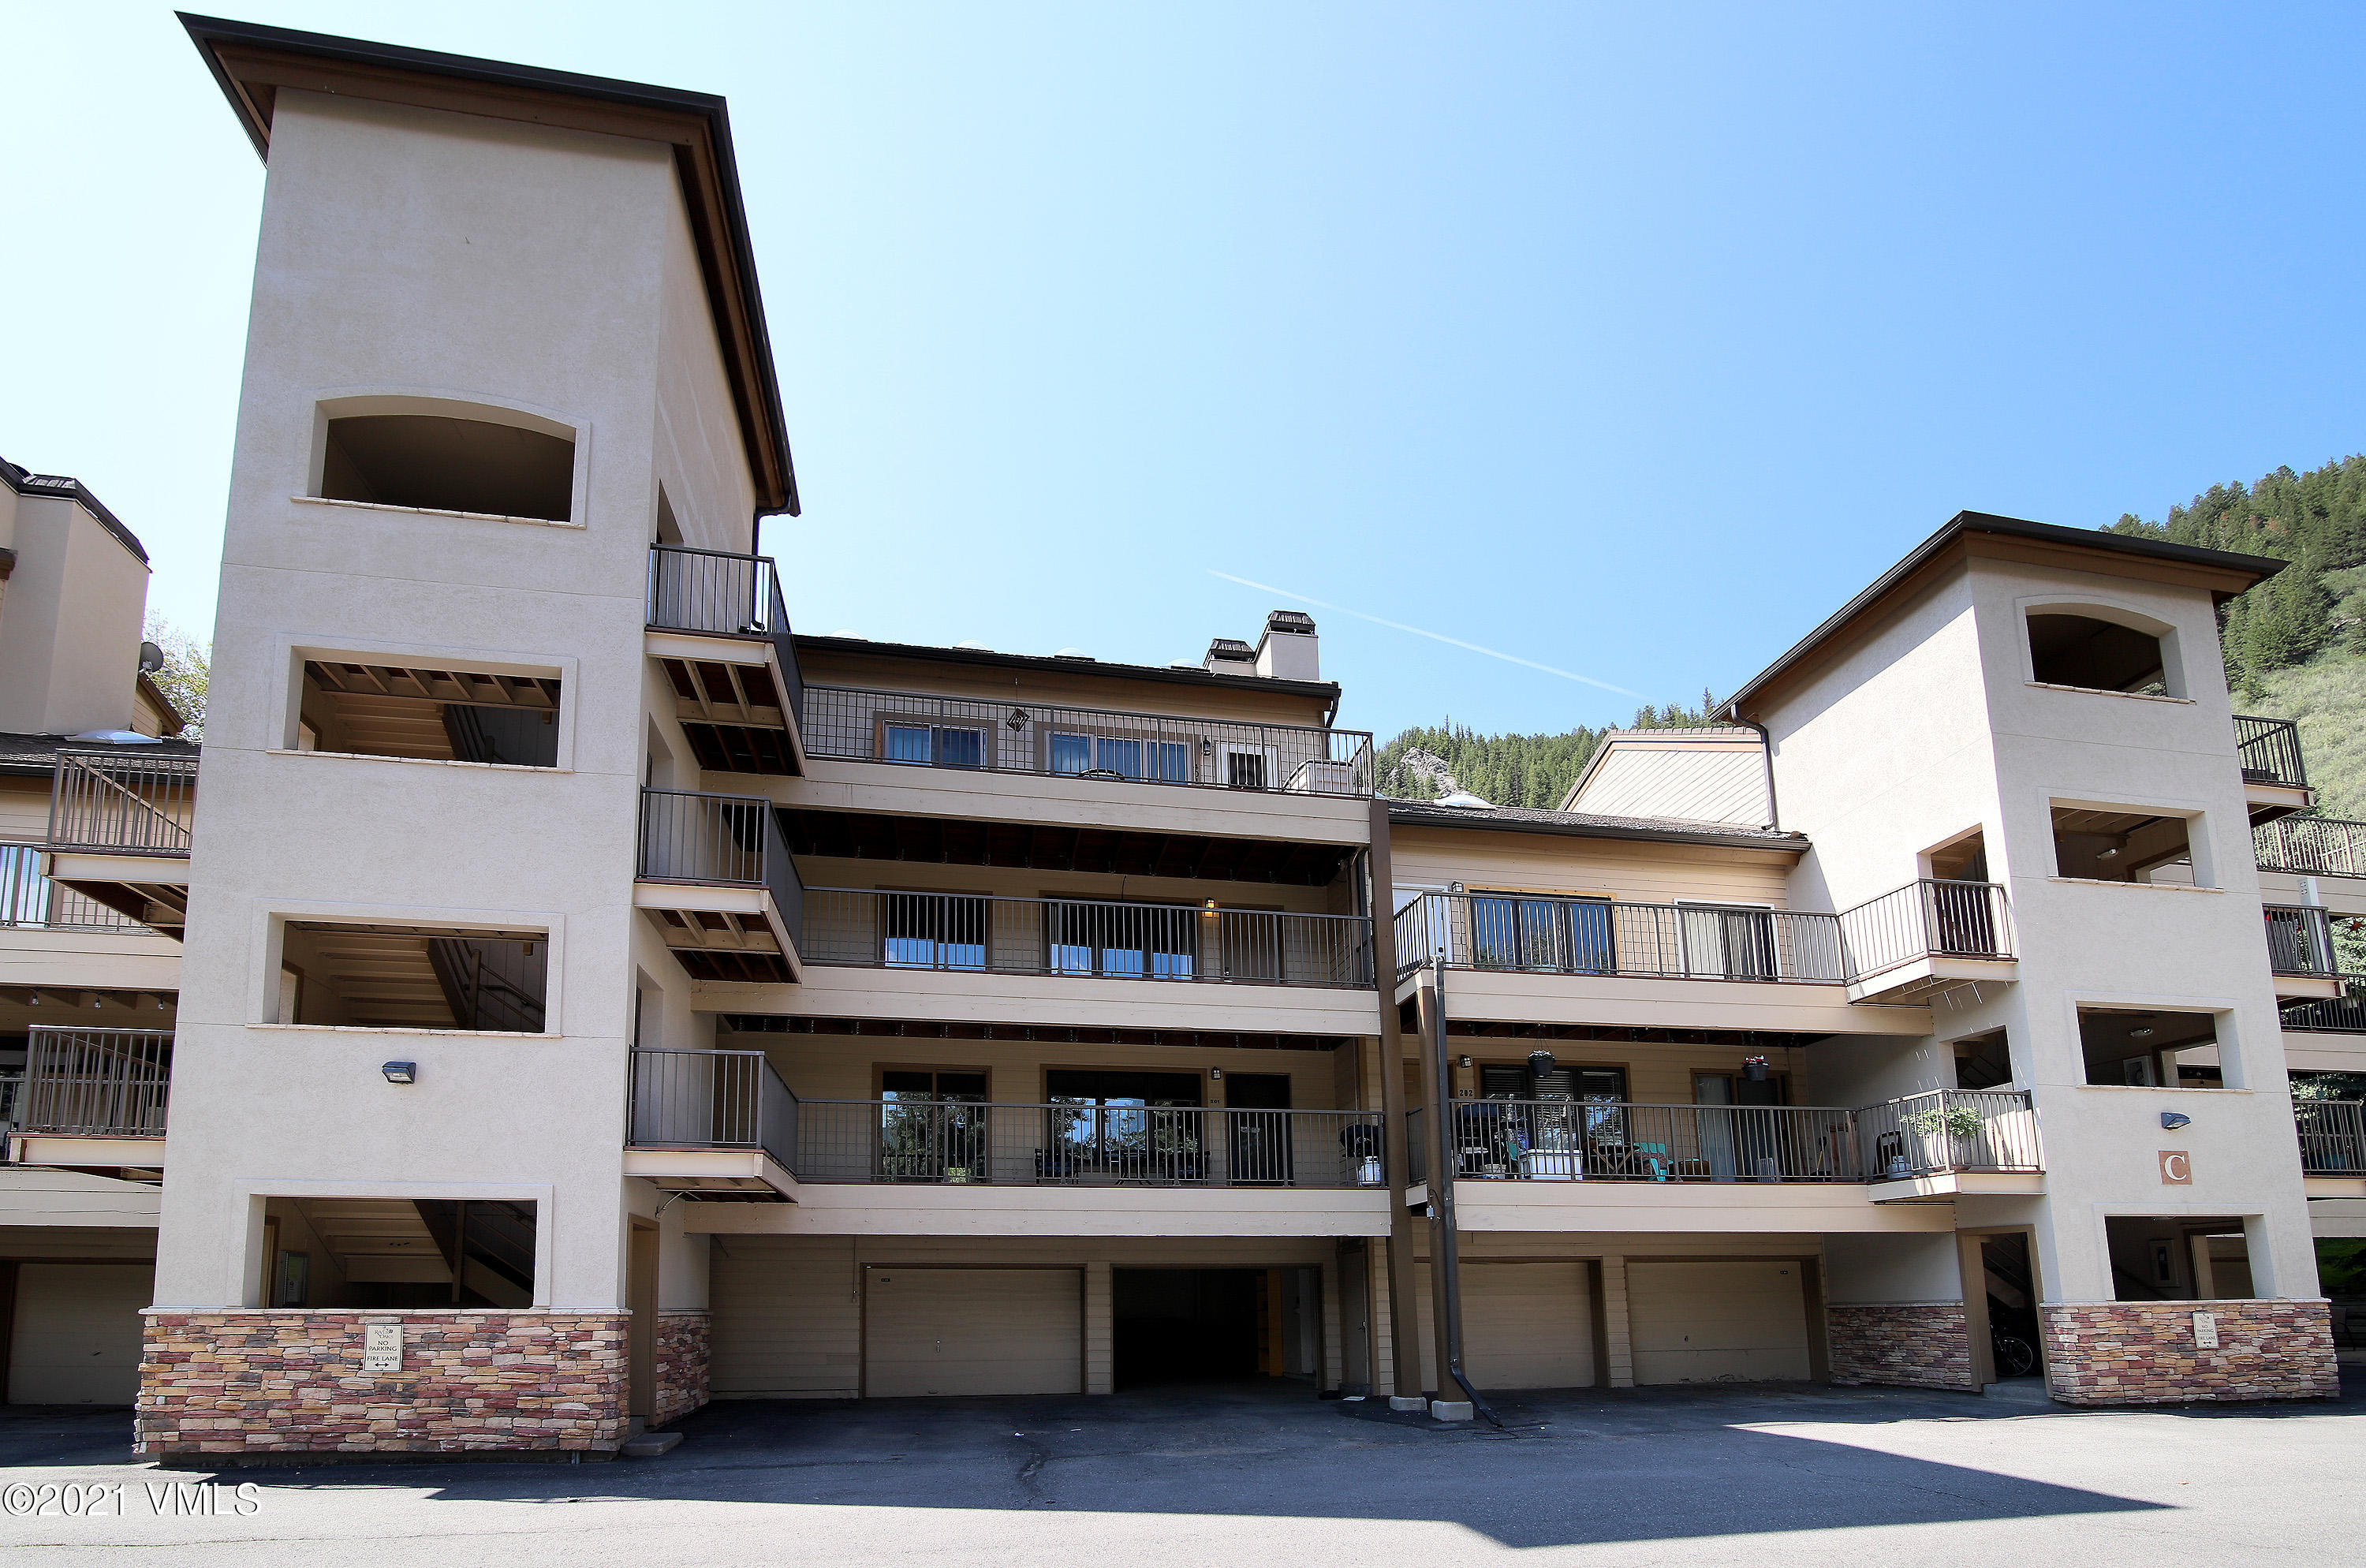 Newly painted 2-bedroom condo at the west end of EagleVail with large 2-car tandem garage with 2 extra storage closets. Room for all of your toys! Nice open floor plan with wood burning fireplace. Each bedroom has a walk-in closet. Huge outdoor deck with a second smaller deck off of the primary bedroom.  Brand new water heater. Great location close to the Beaver Creek entrance and to Avon, near the bus line and backing up to National Forest Service land. You will love all of EagleVail's amenities including the golf course, pool, tennis courts, pocket parks and community gardens. Skier shuttle available in the winter.